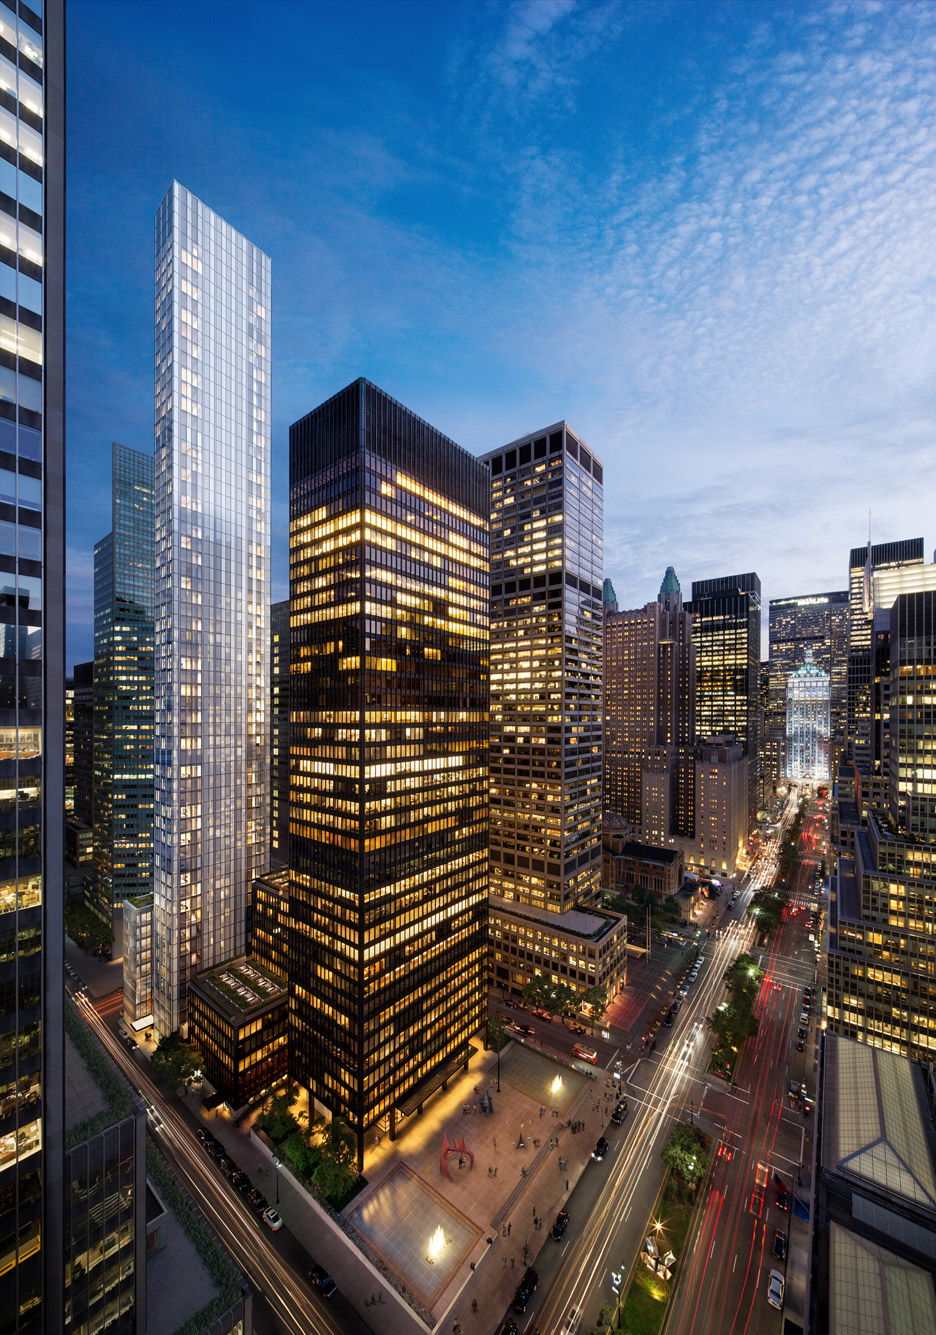 100 east 53rd street, one hundred east fifty third street, norman foster, seagram building